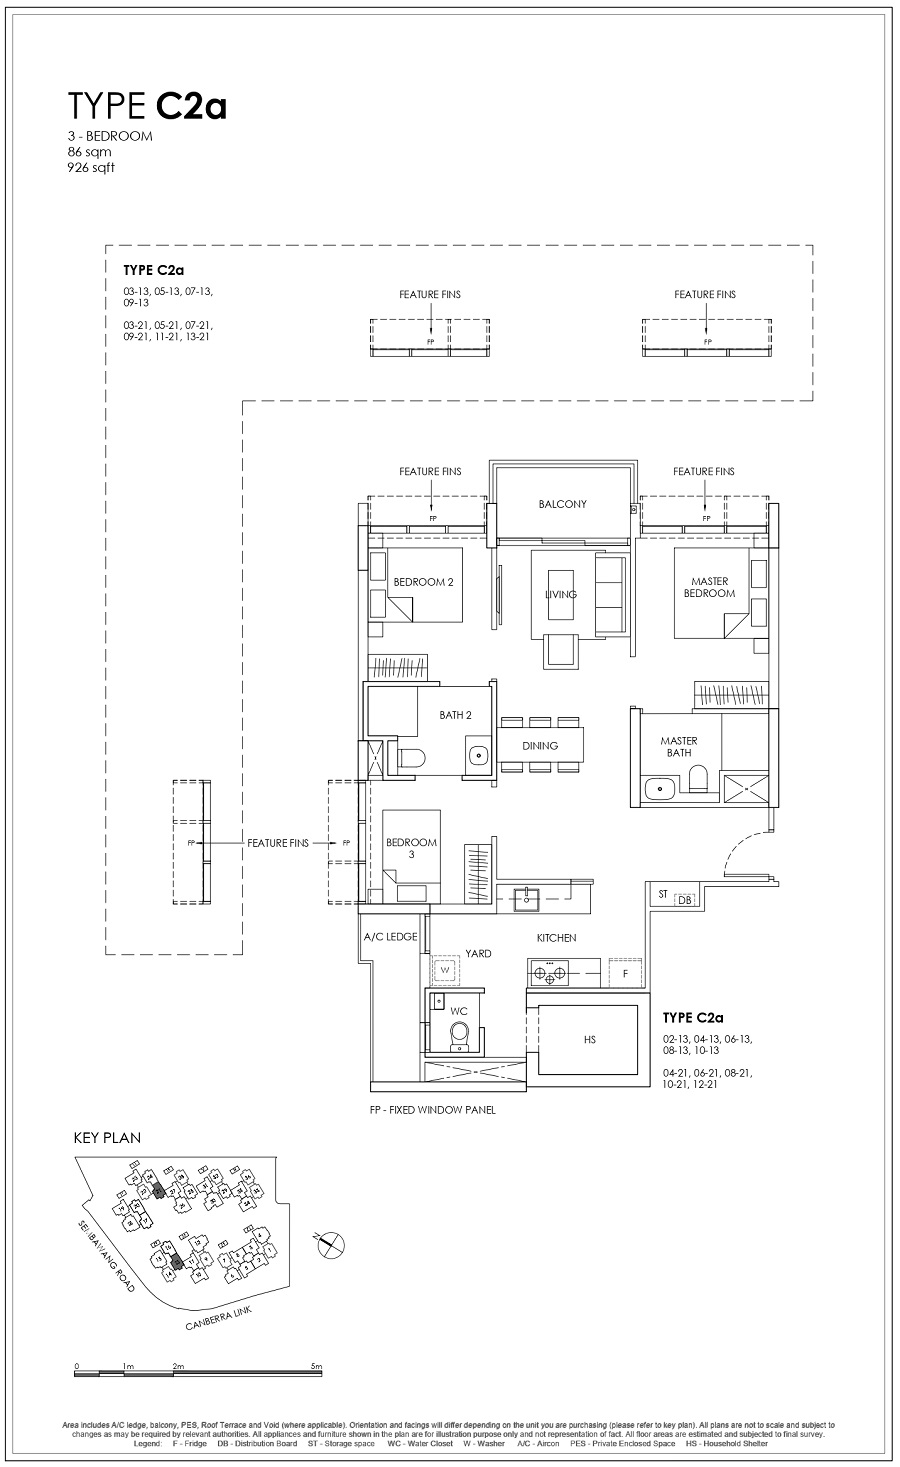 Provence Residence EC 3BR Type C2a 86_926